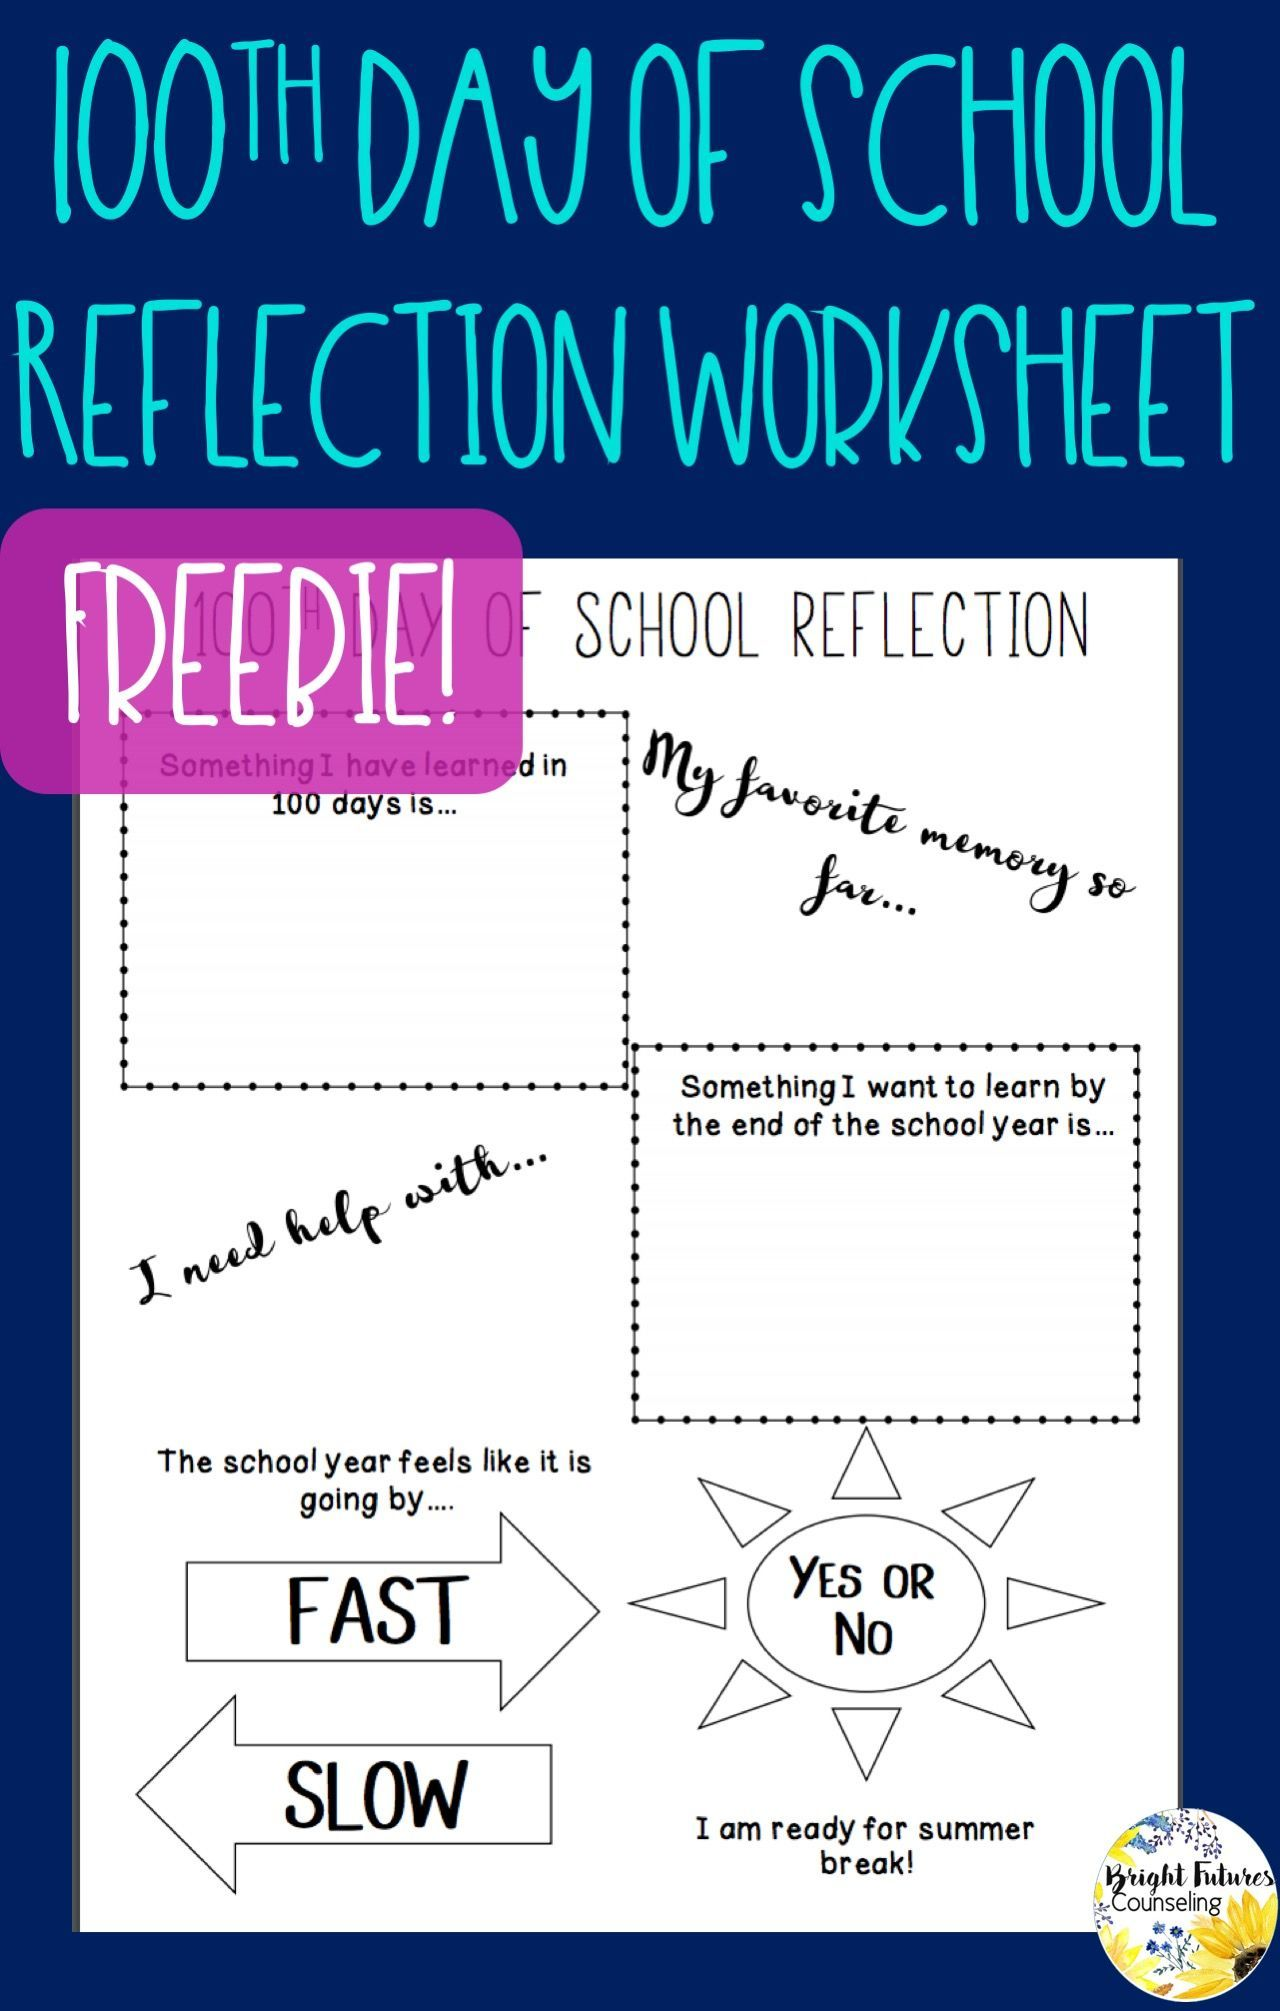 100th Day Of School Reflection